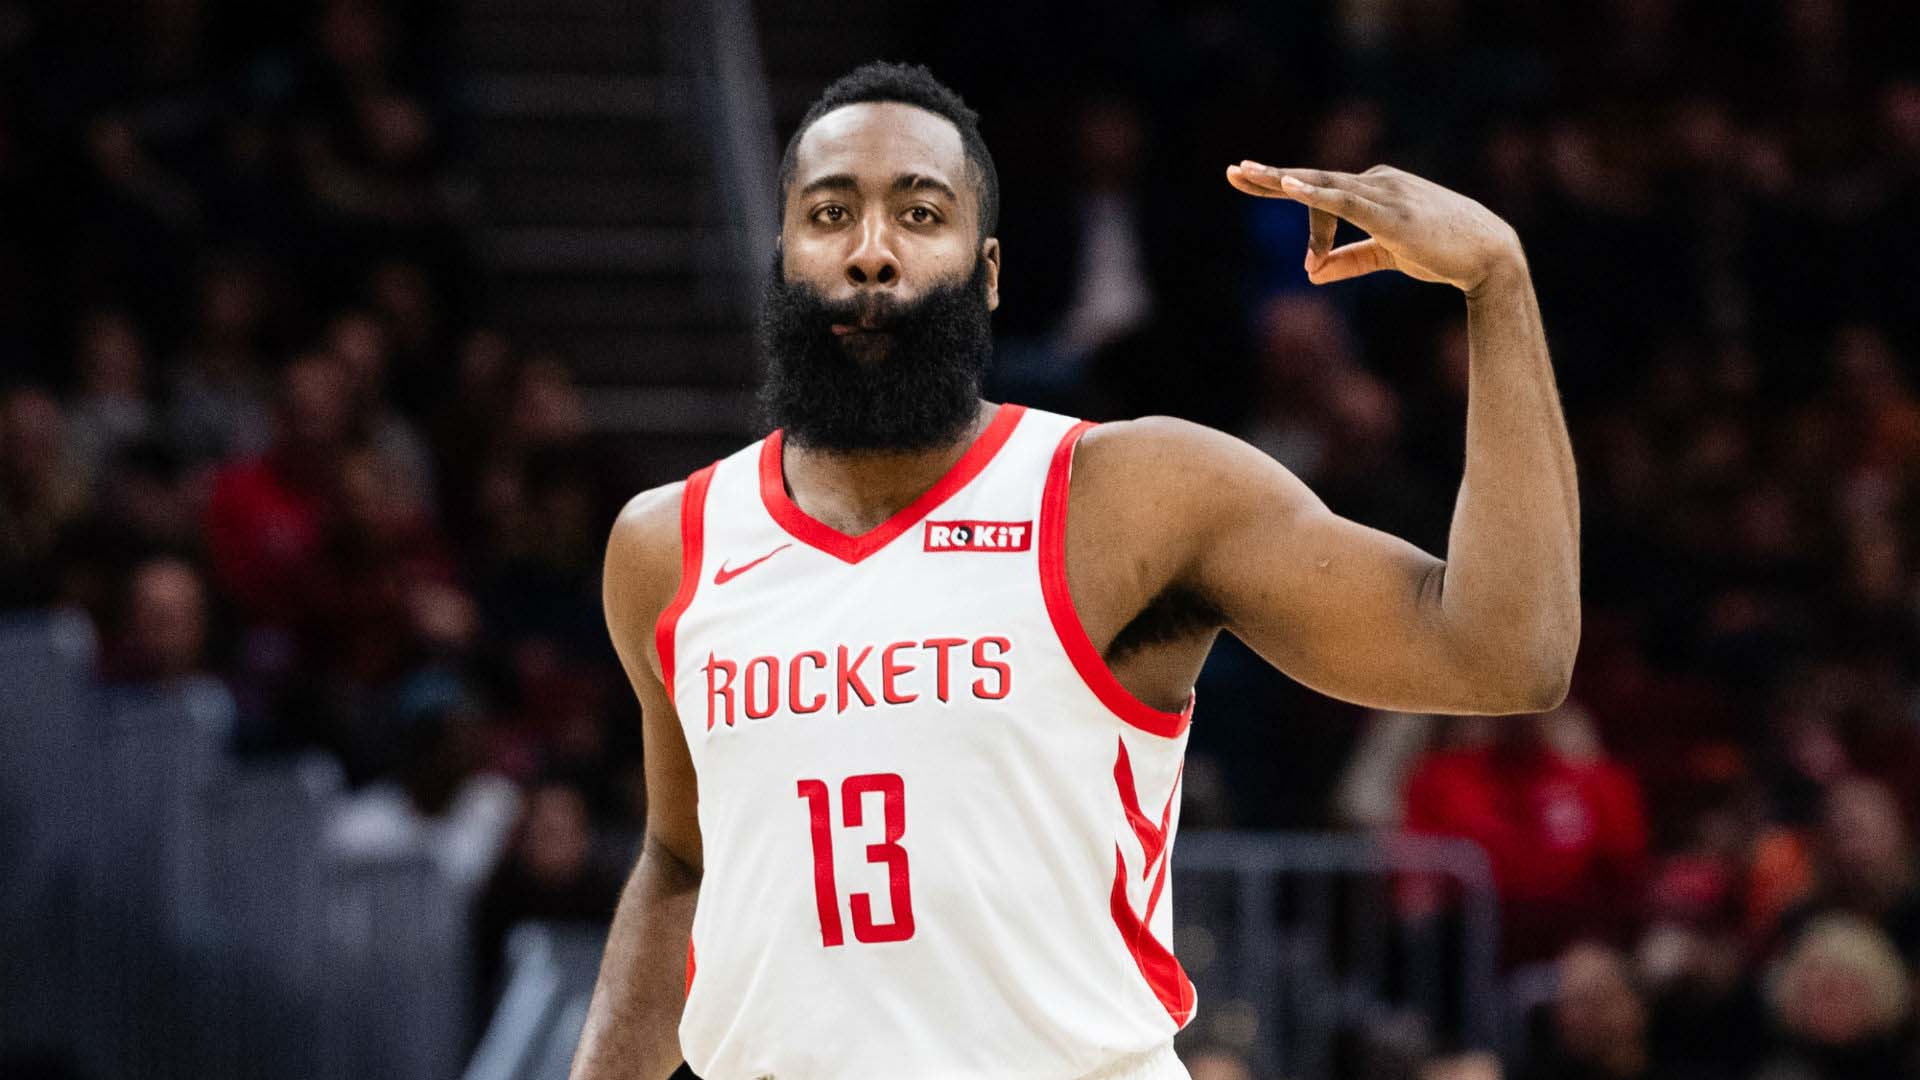 Purchase James Harden NBA Jerseys From Nike Through Lemoney